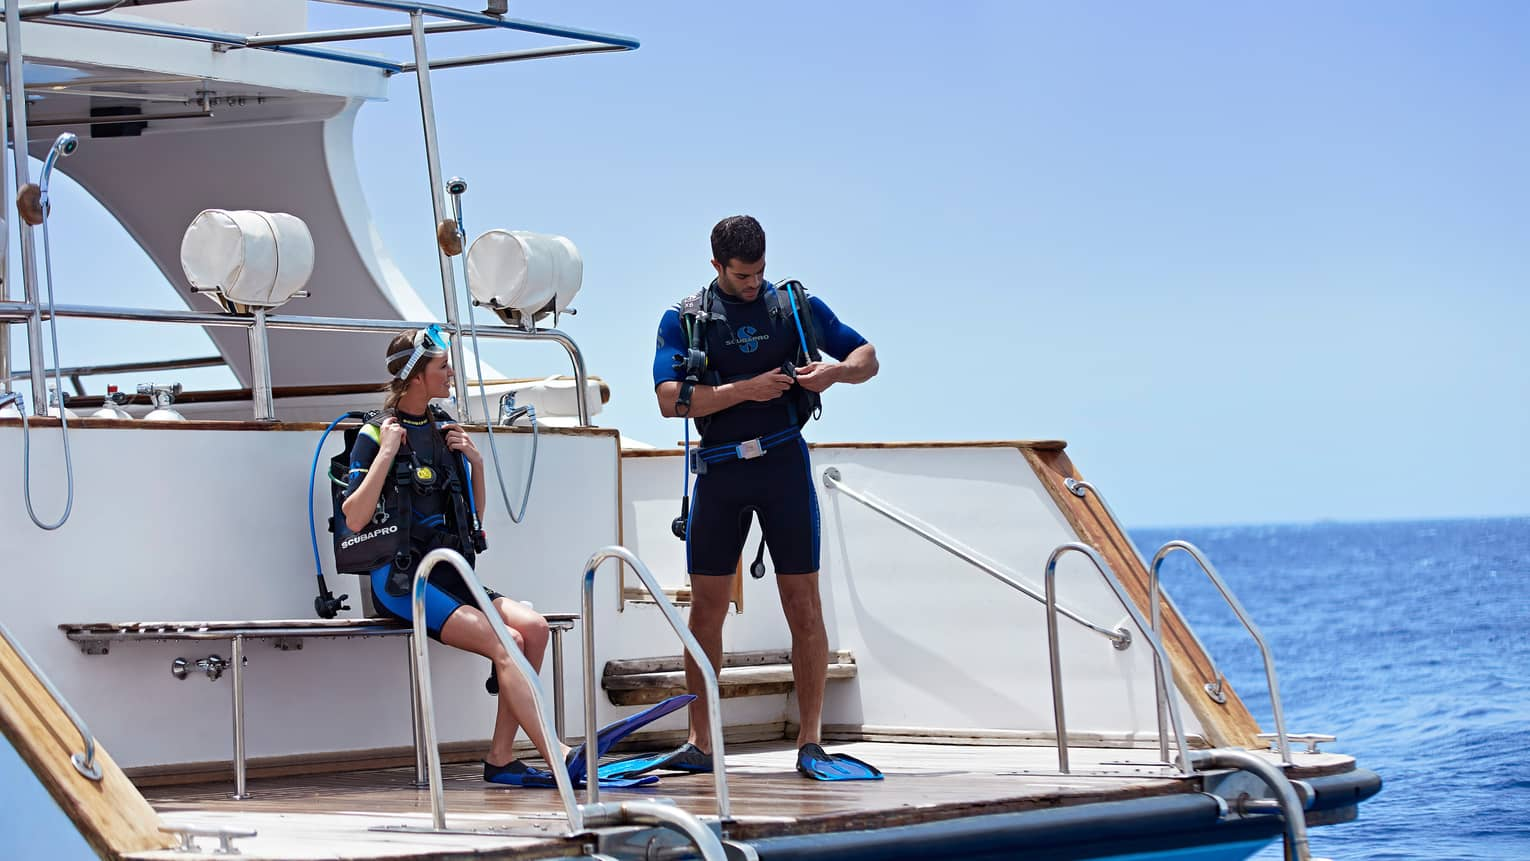 Two scuba divers in gear stand on deck of yacht